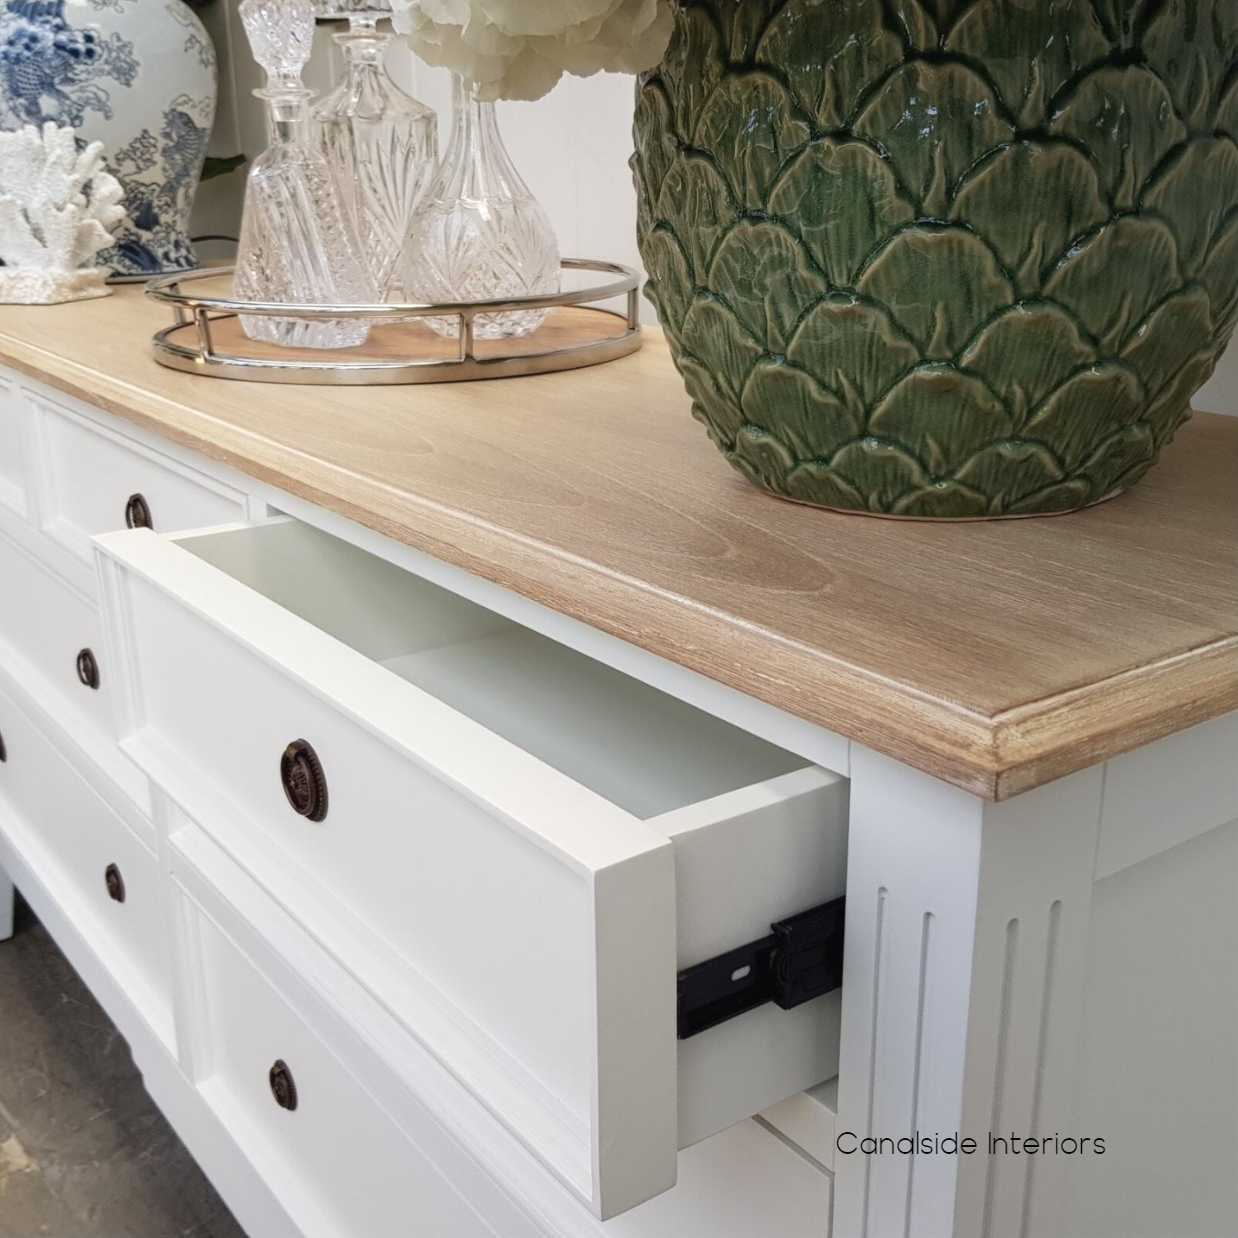 Peninsula Sideboard 7 Drawer White with Limewash Top  LIVING TV Media & Storage, TABLES Sideboards & Buffets, STORAGE, STORAGE Sideboards & Buffets